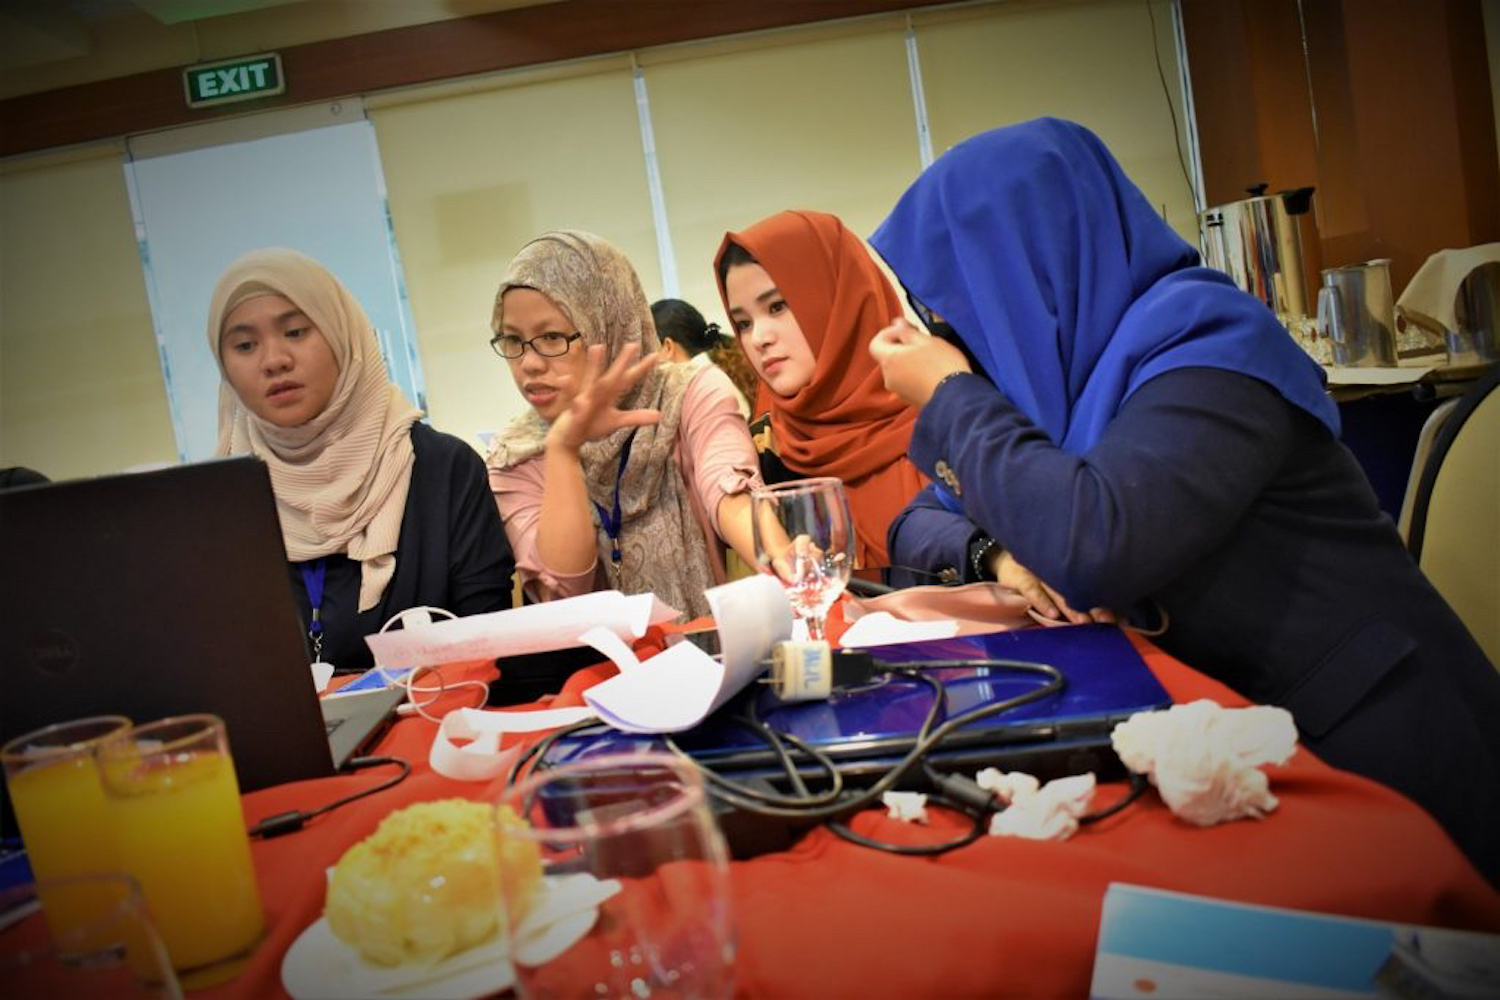 Maranao youth learning citizen journalism